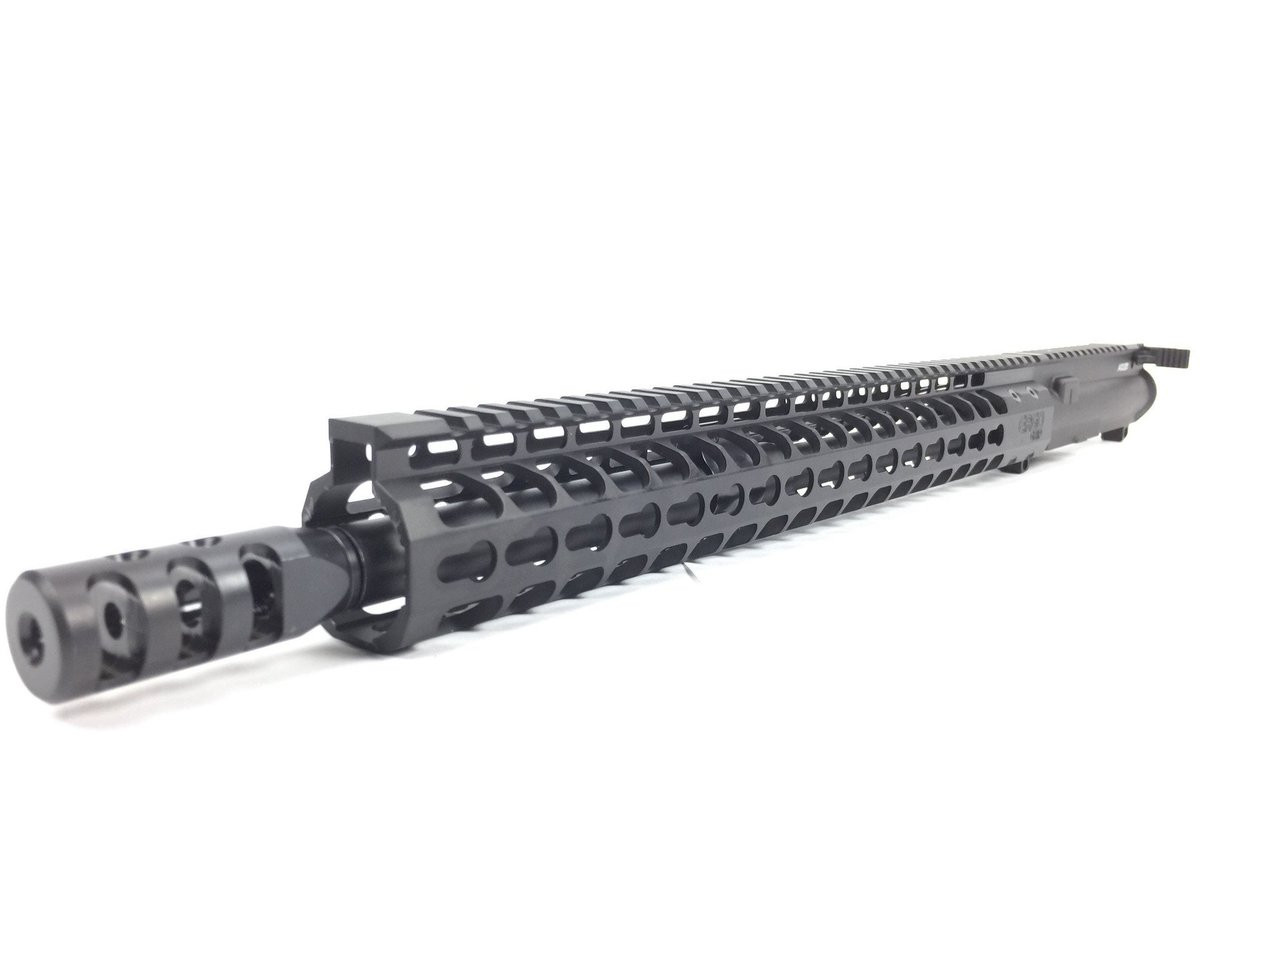 "TITAN 16"" 5.56 1:7 UPPER ASSEMBLY (PREMIUM COLLECTION) KEYMOD"